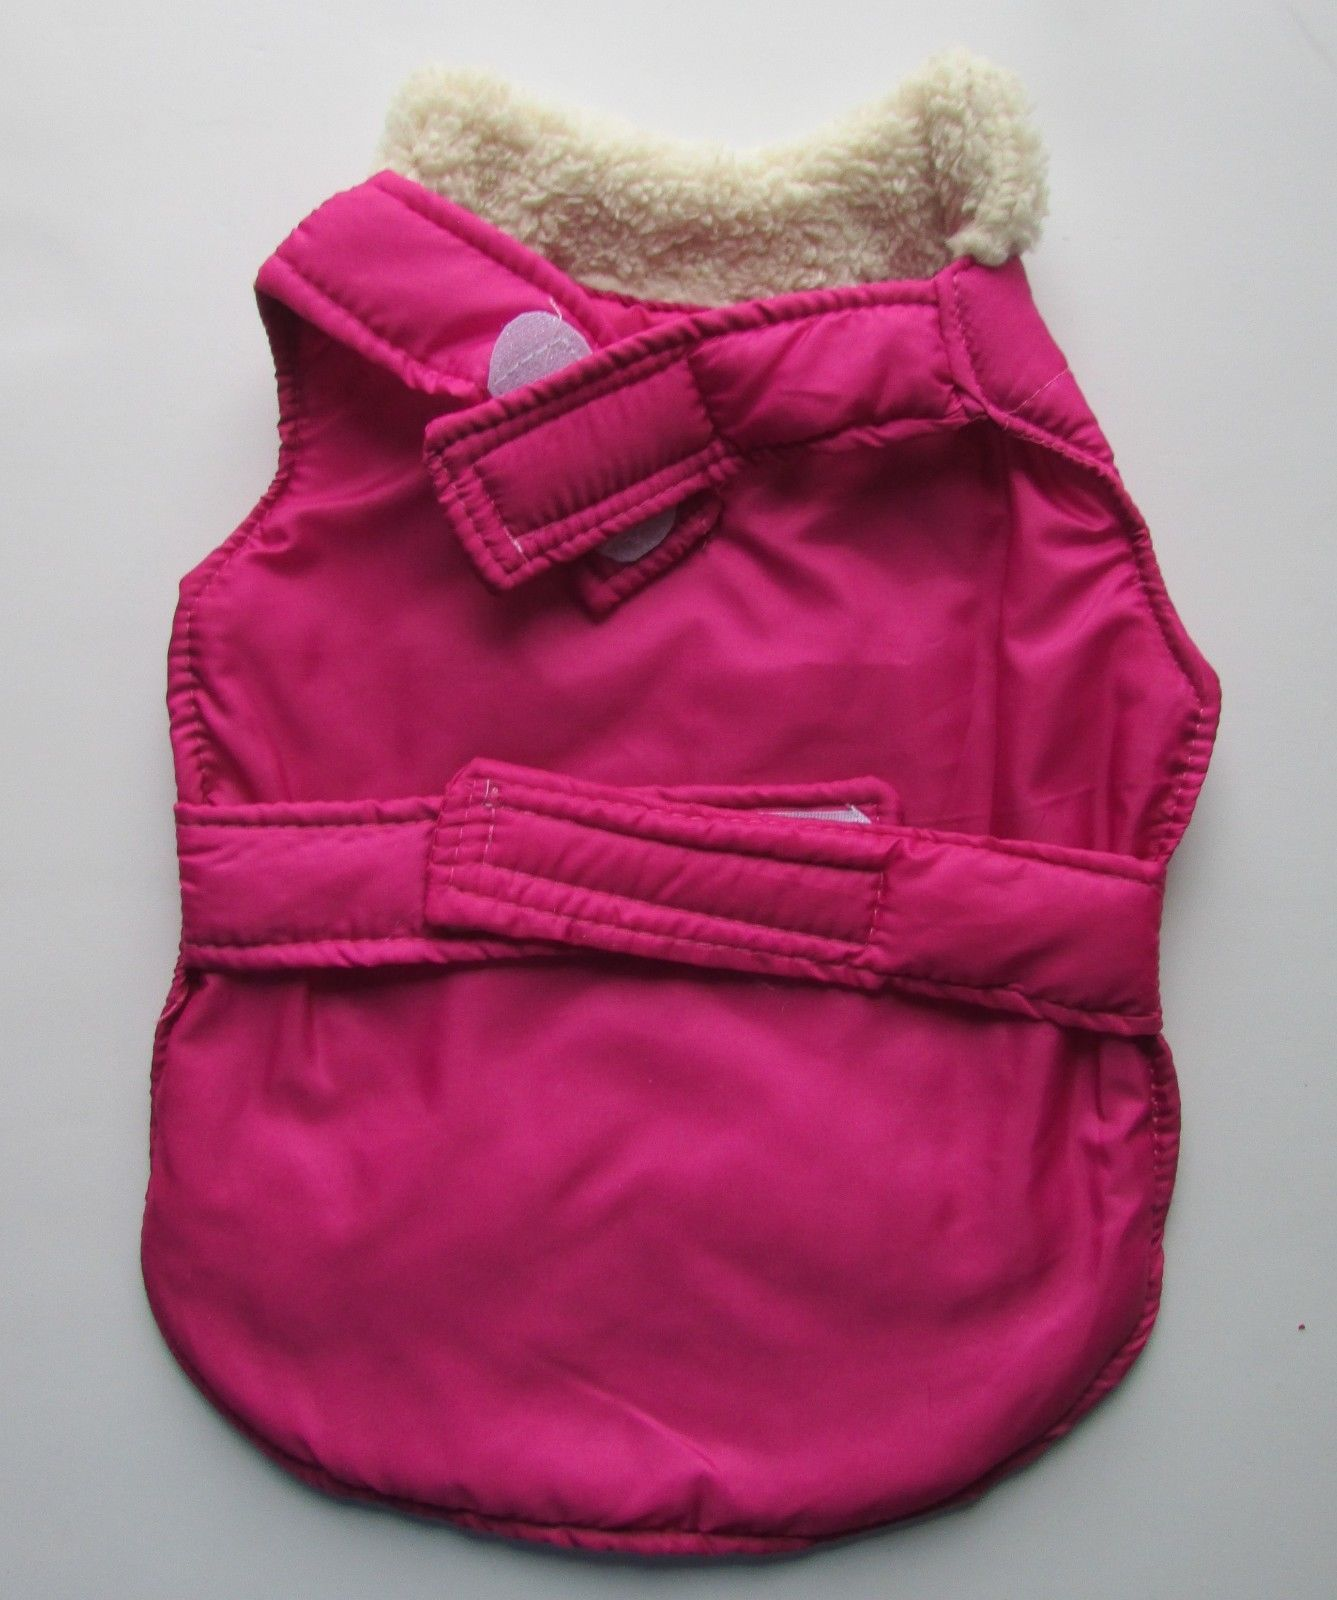 Pet Jacket, 2X Bandana Pink Multi-Color  Dog ,Cat NWT Sz S